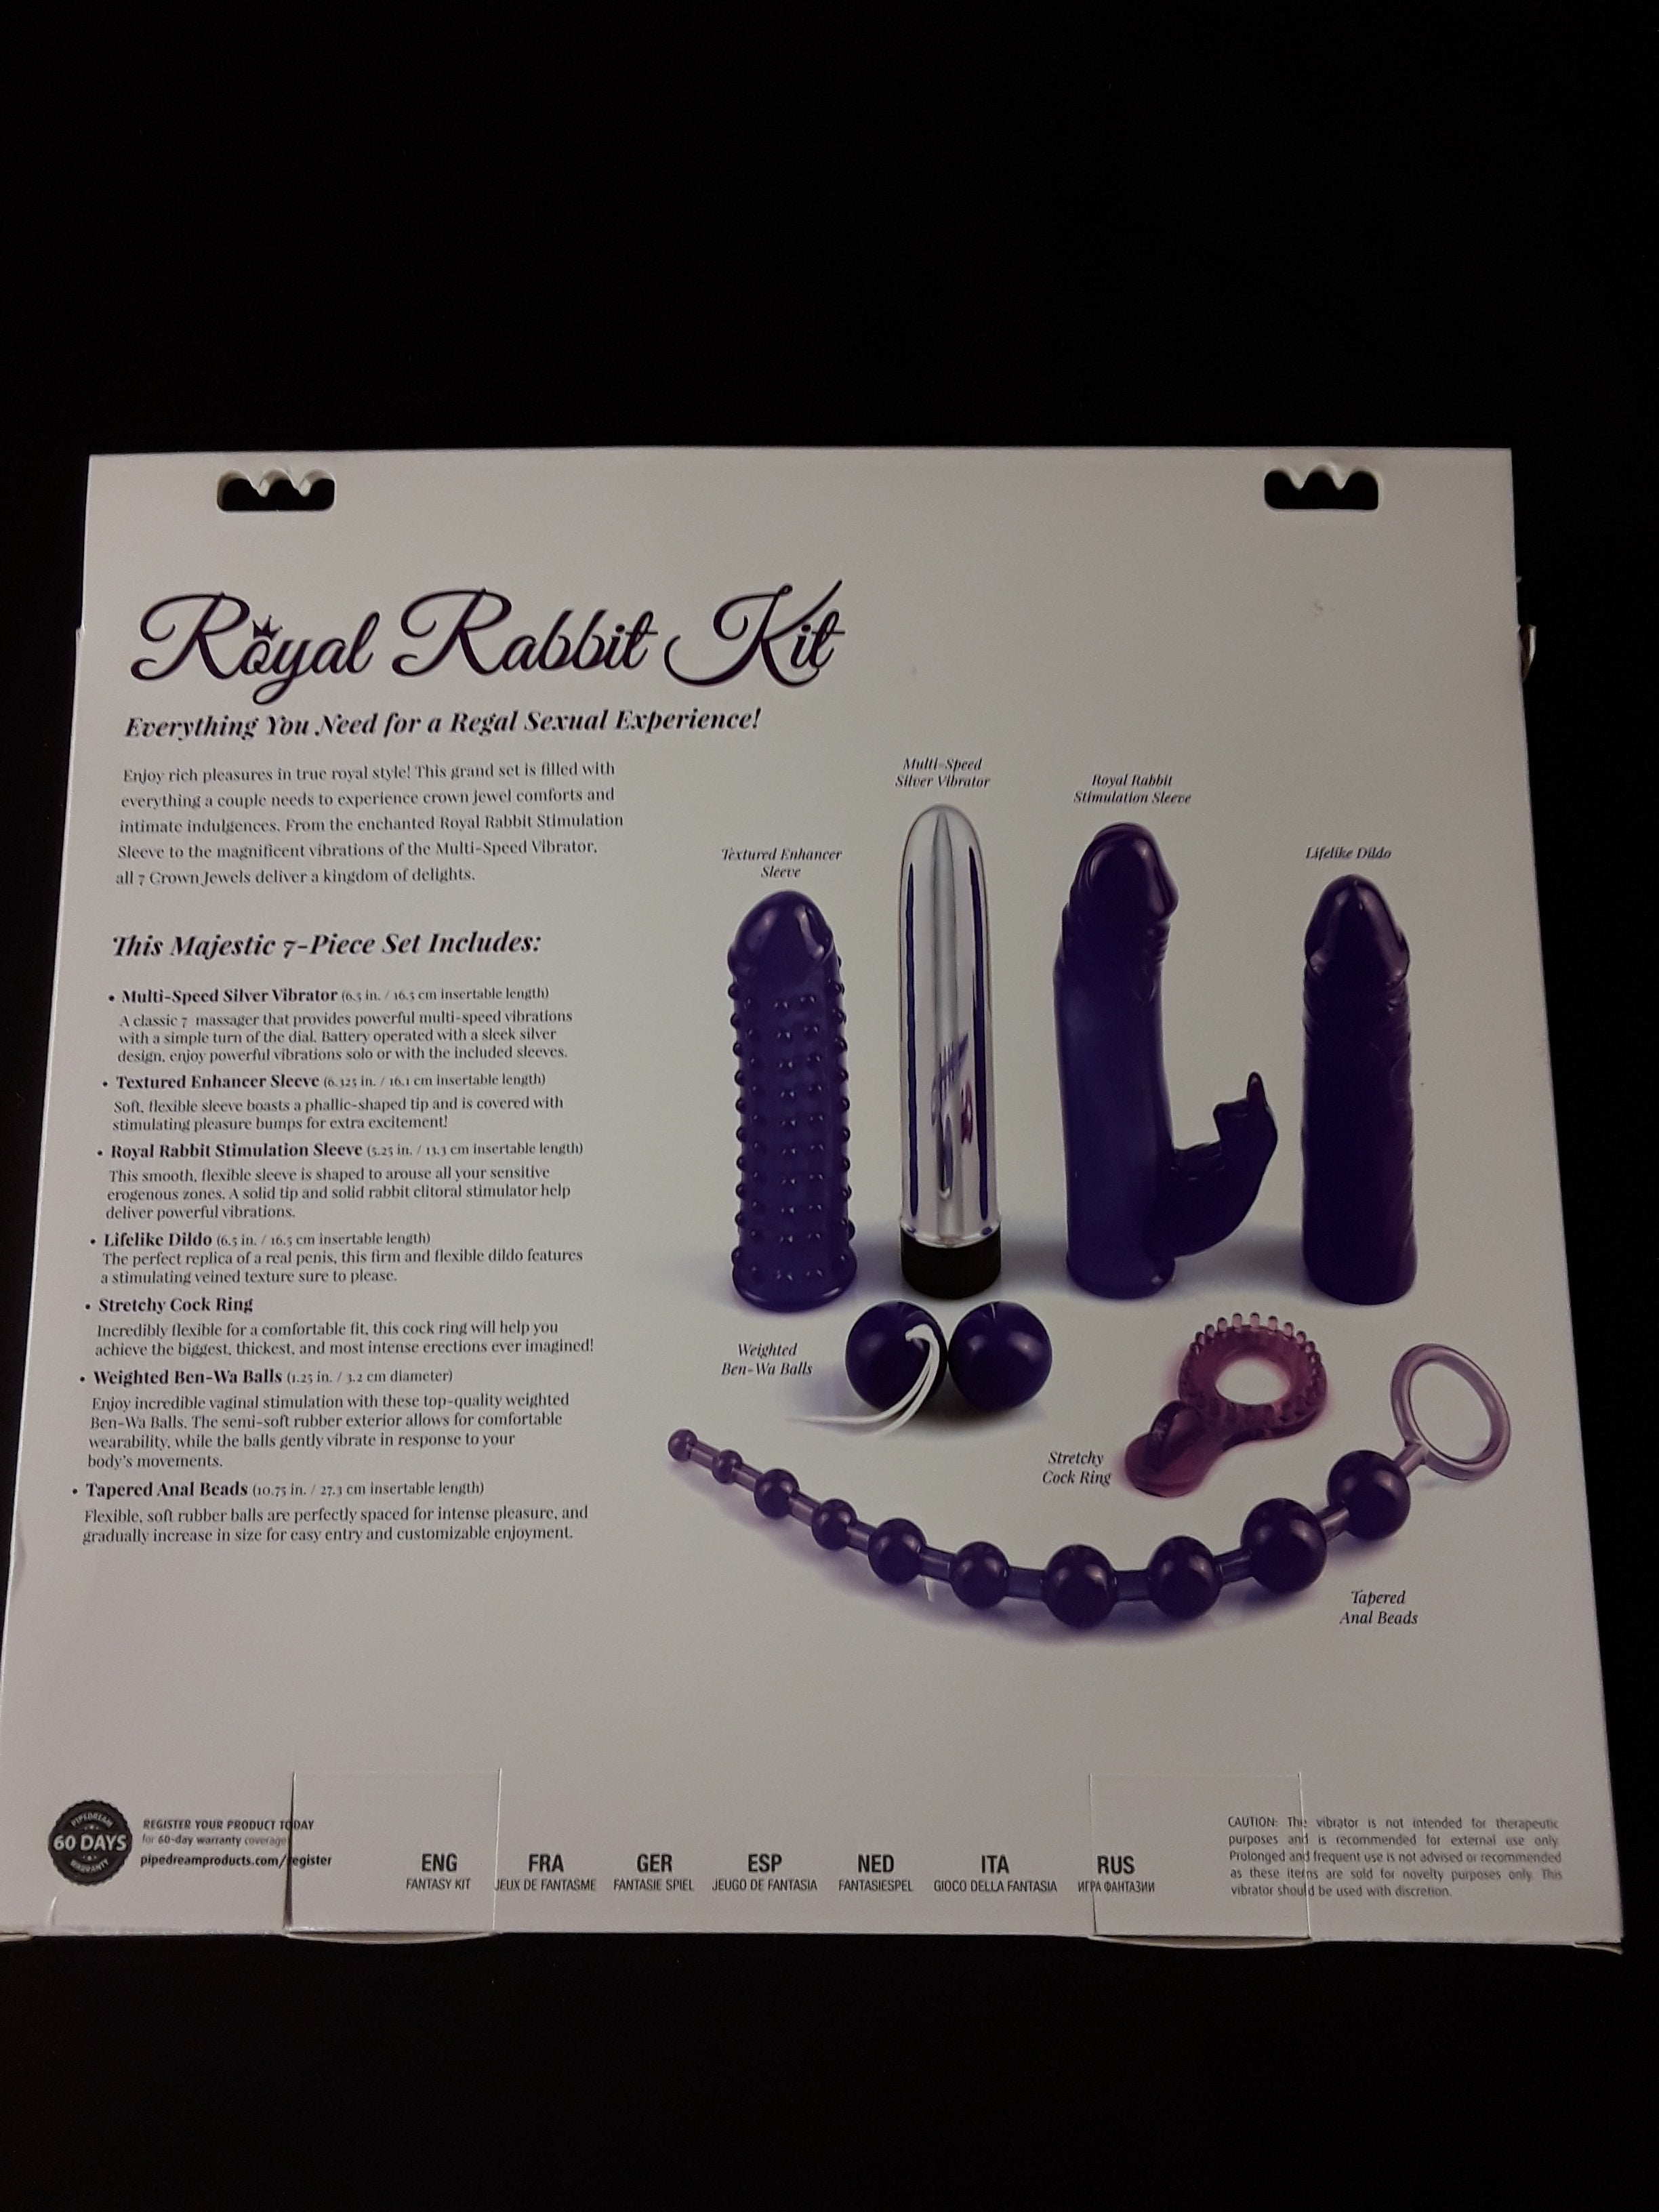 King Royal Rabbit Kit